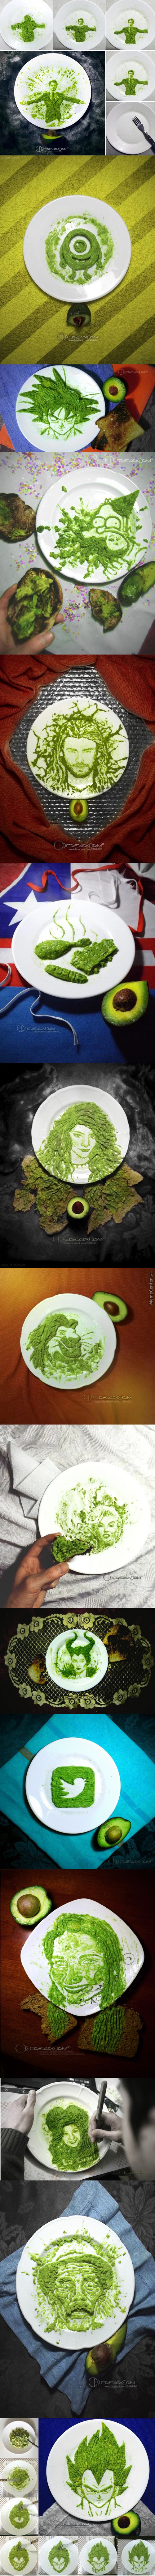 Avocado Art 2 By Boris Toledo Doorm